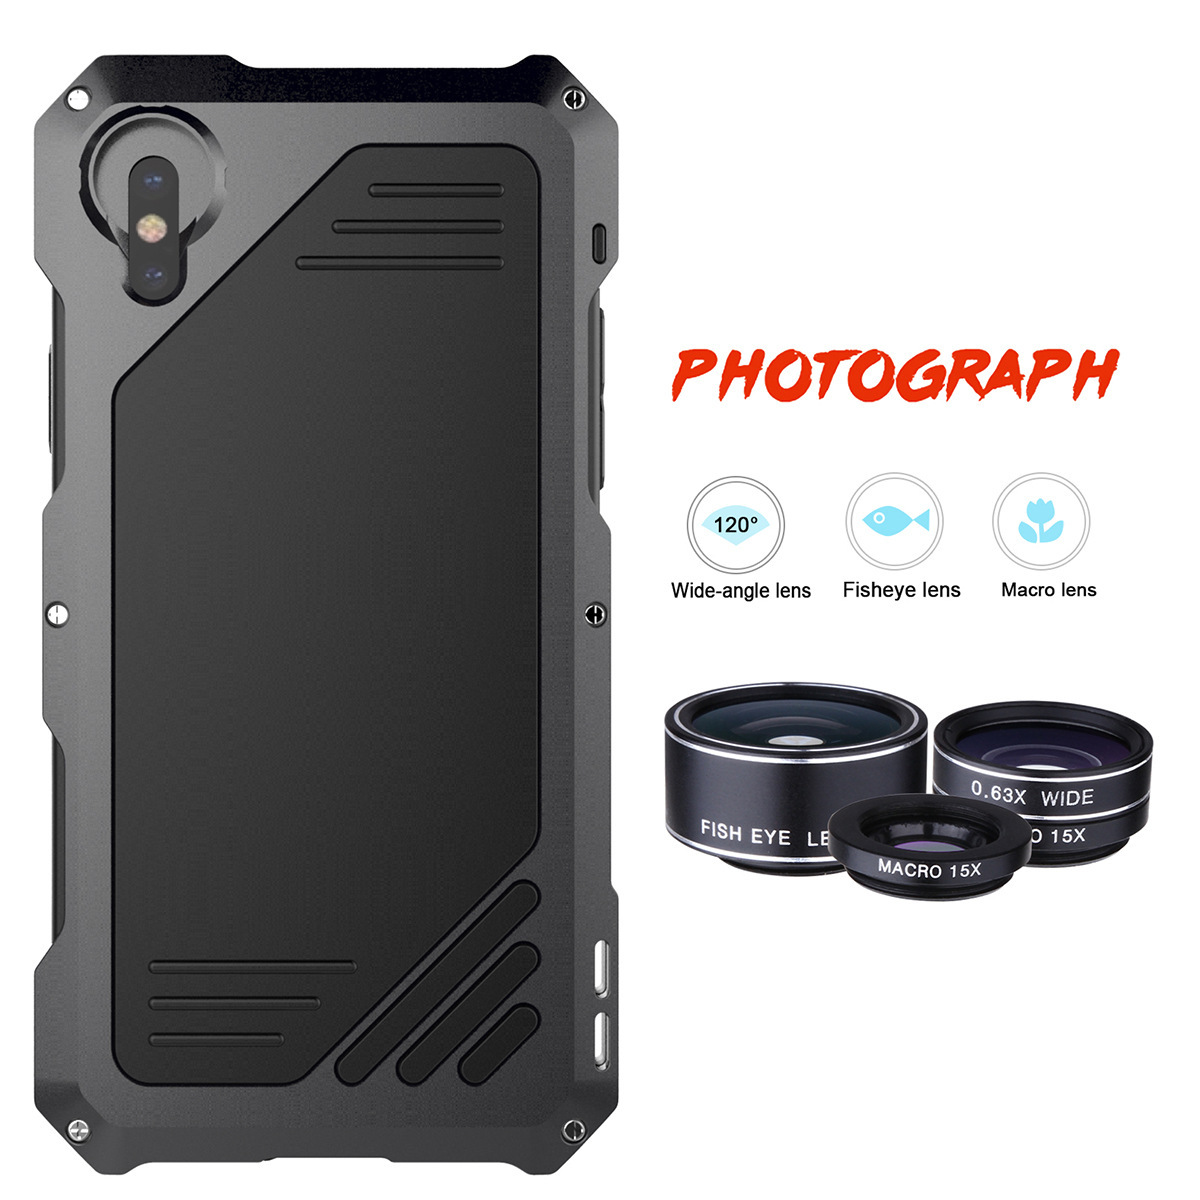 Three Lens 120 Wide angle Fisheye Macro Lens Photograph Phone Case for iphone X 5S 7 8 Plus Aluminum Alloy Anti knock Bumper